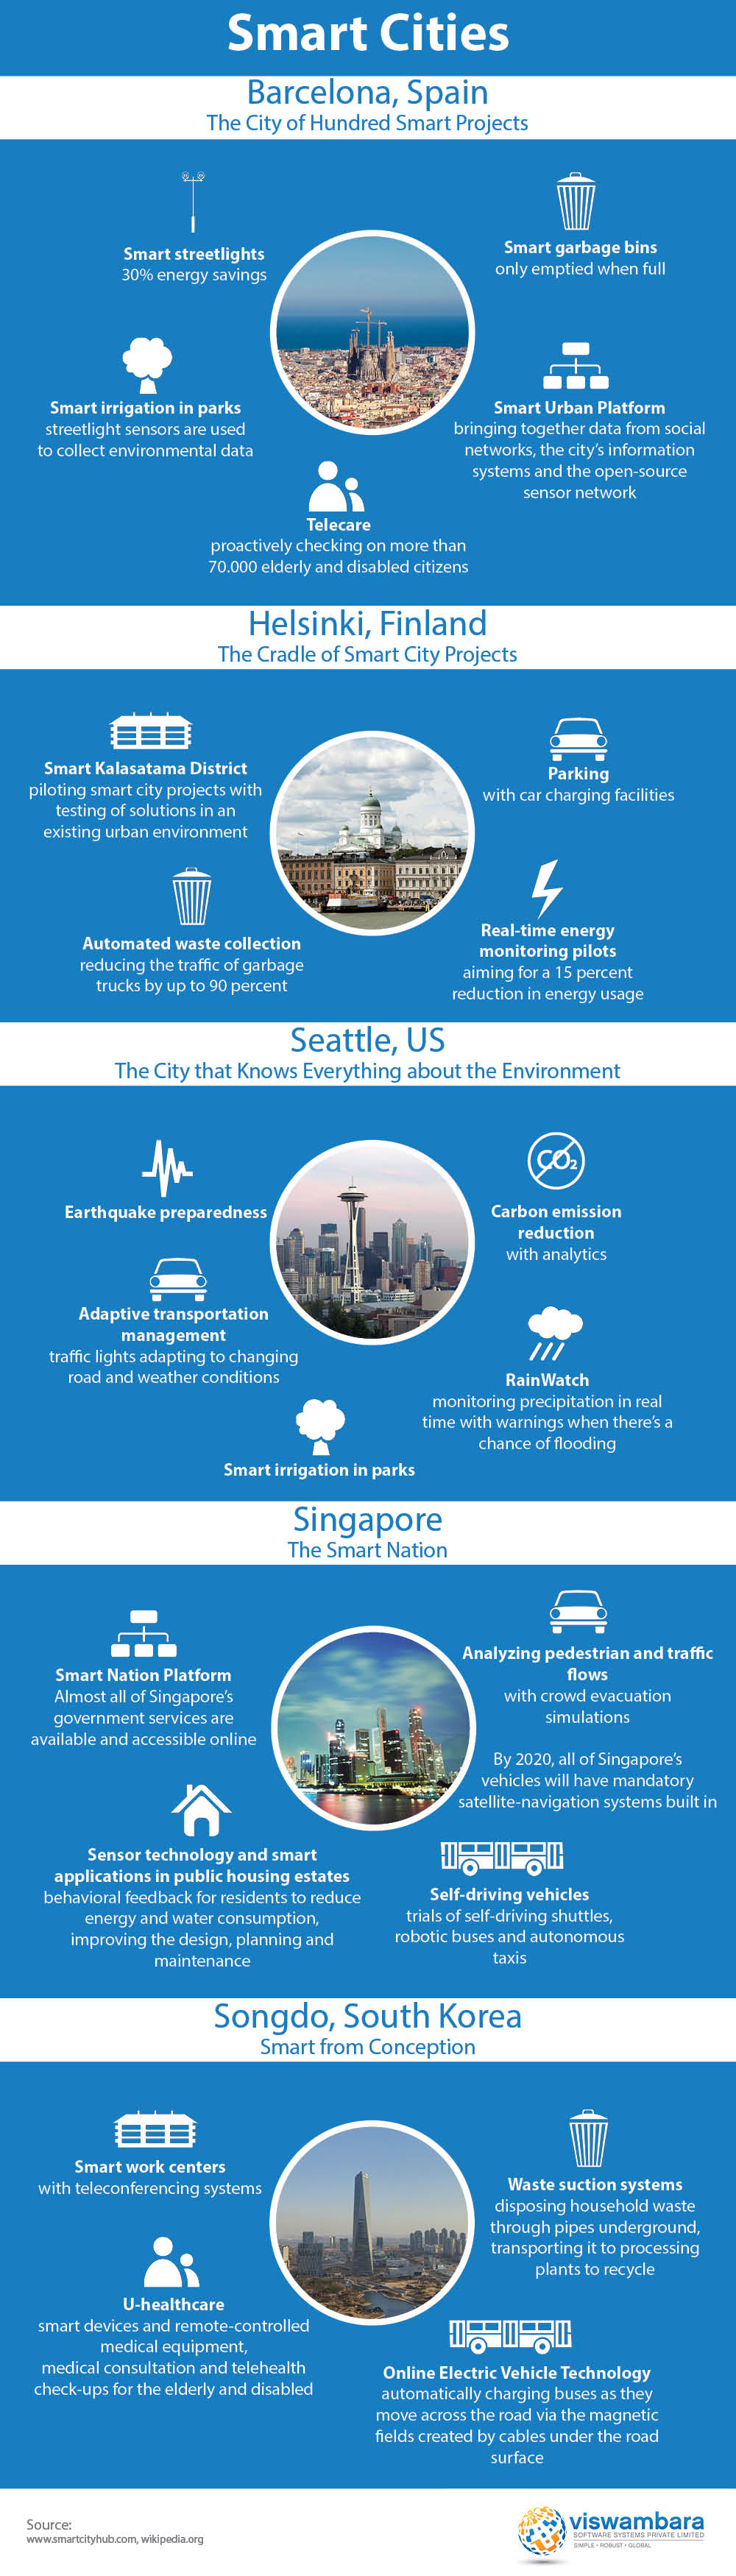 Some of the most remarakble smart city project from around the world